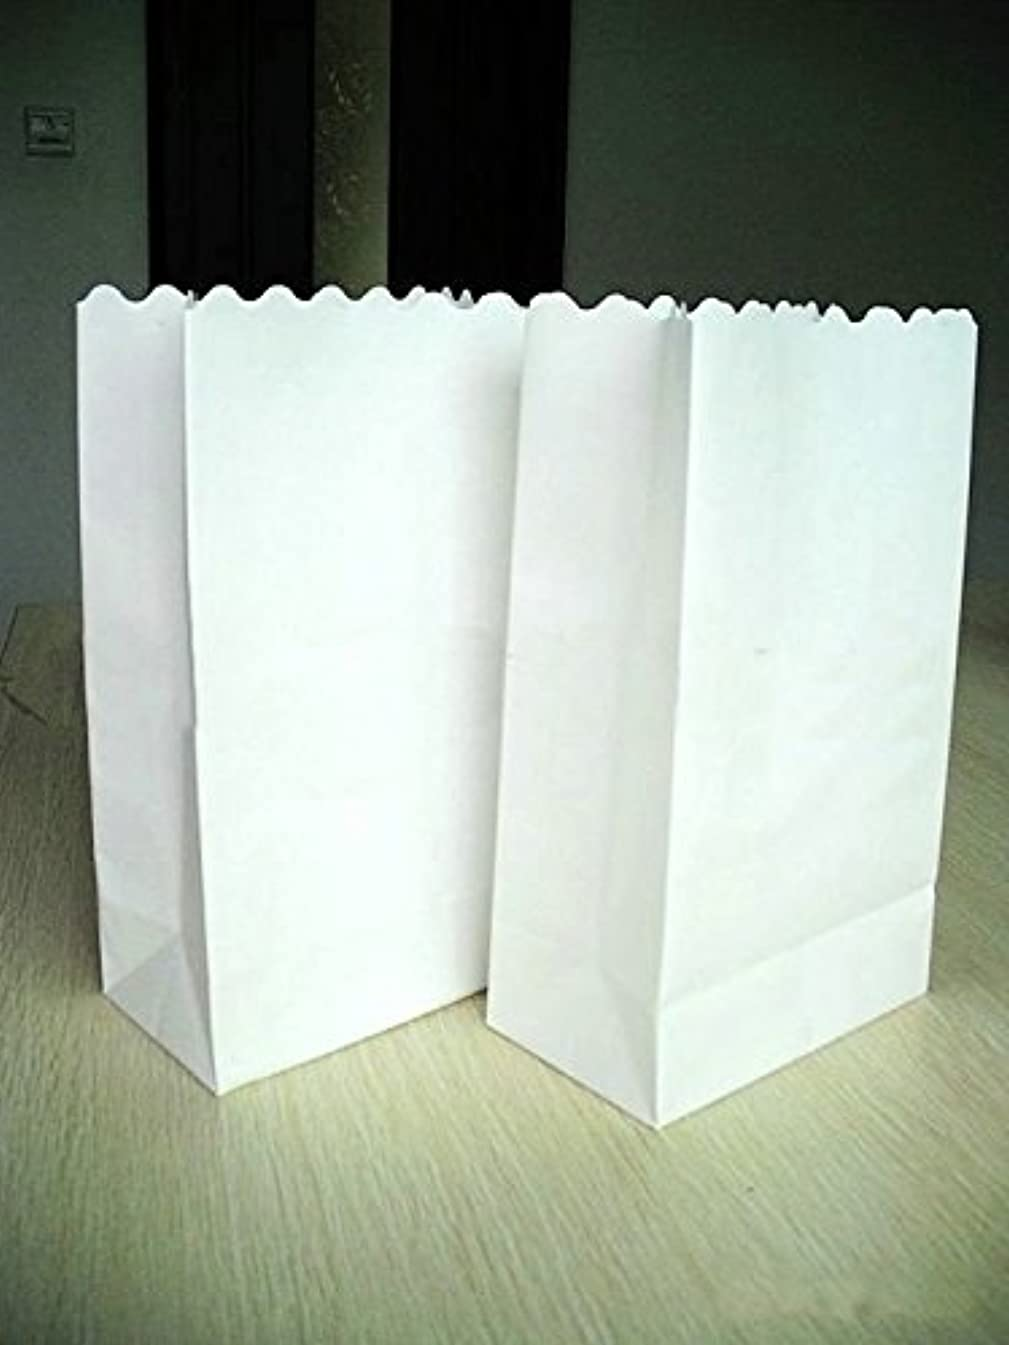 Joinwin? Pack of 20 New White Luminary Bags - Plain white Design - Wedding, Reception, Party and Event Decor - Flame Resistant Paper - Luminaria